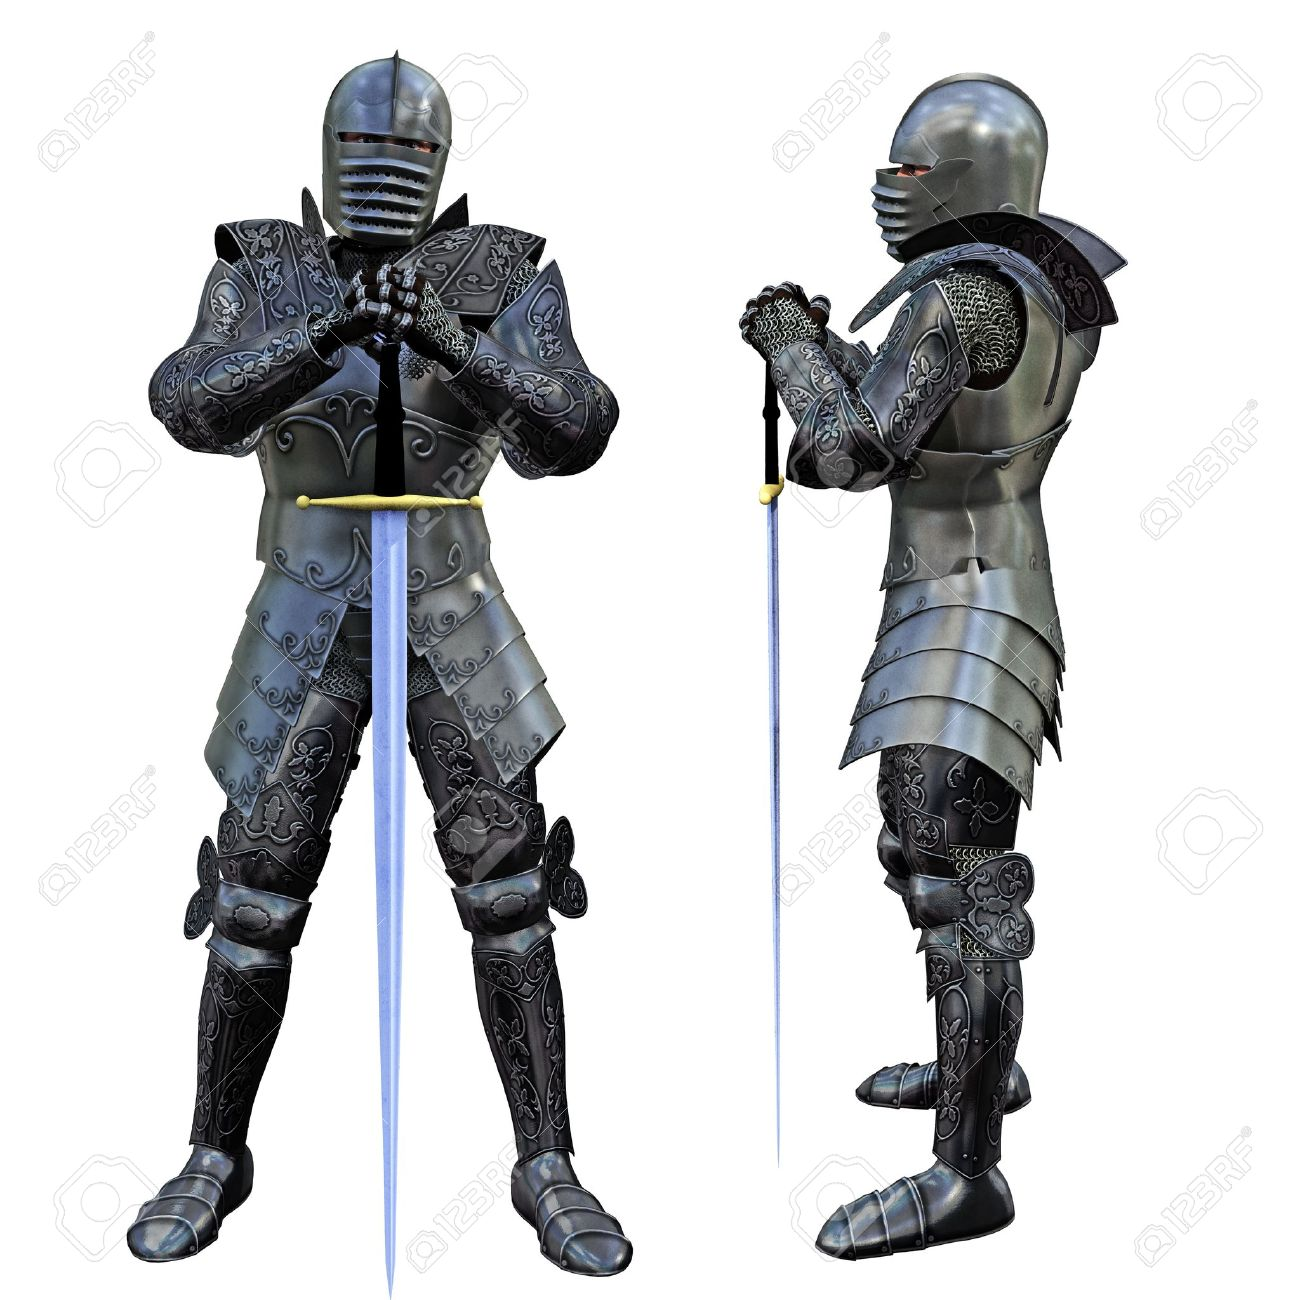 9851447-Knight-Swordsman-in-Full-Armour-3D-render--Stock-Photo-knight-medieval-armor